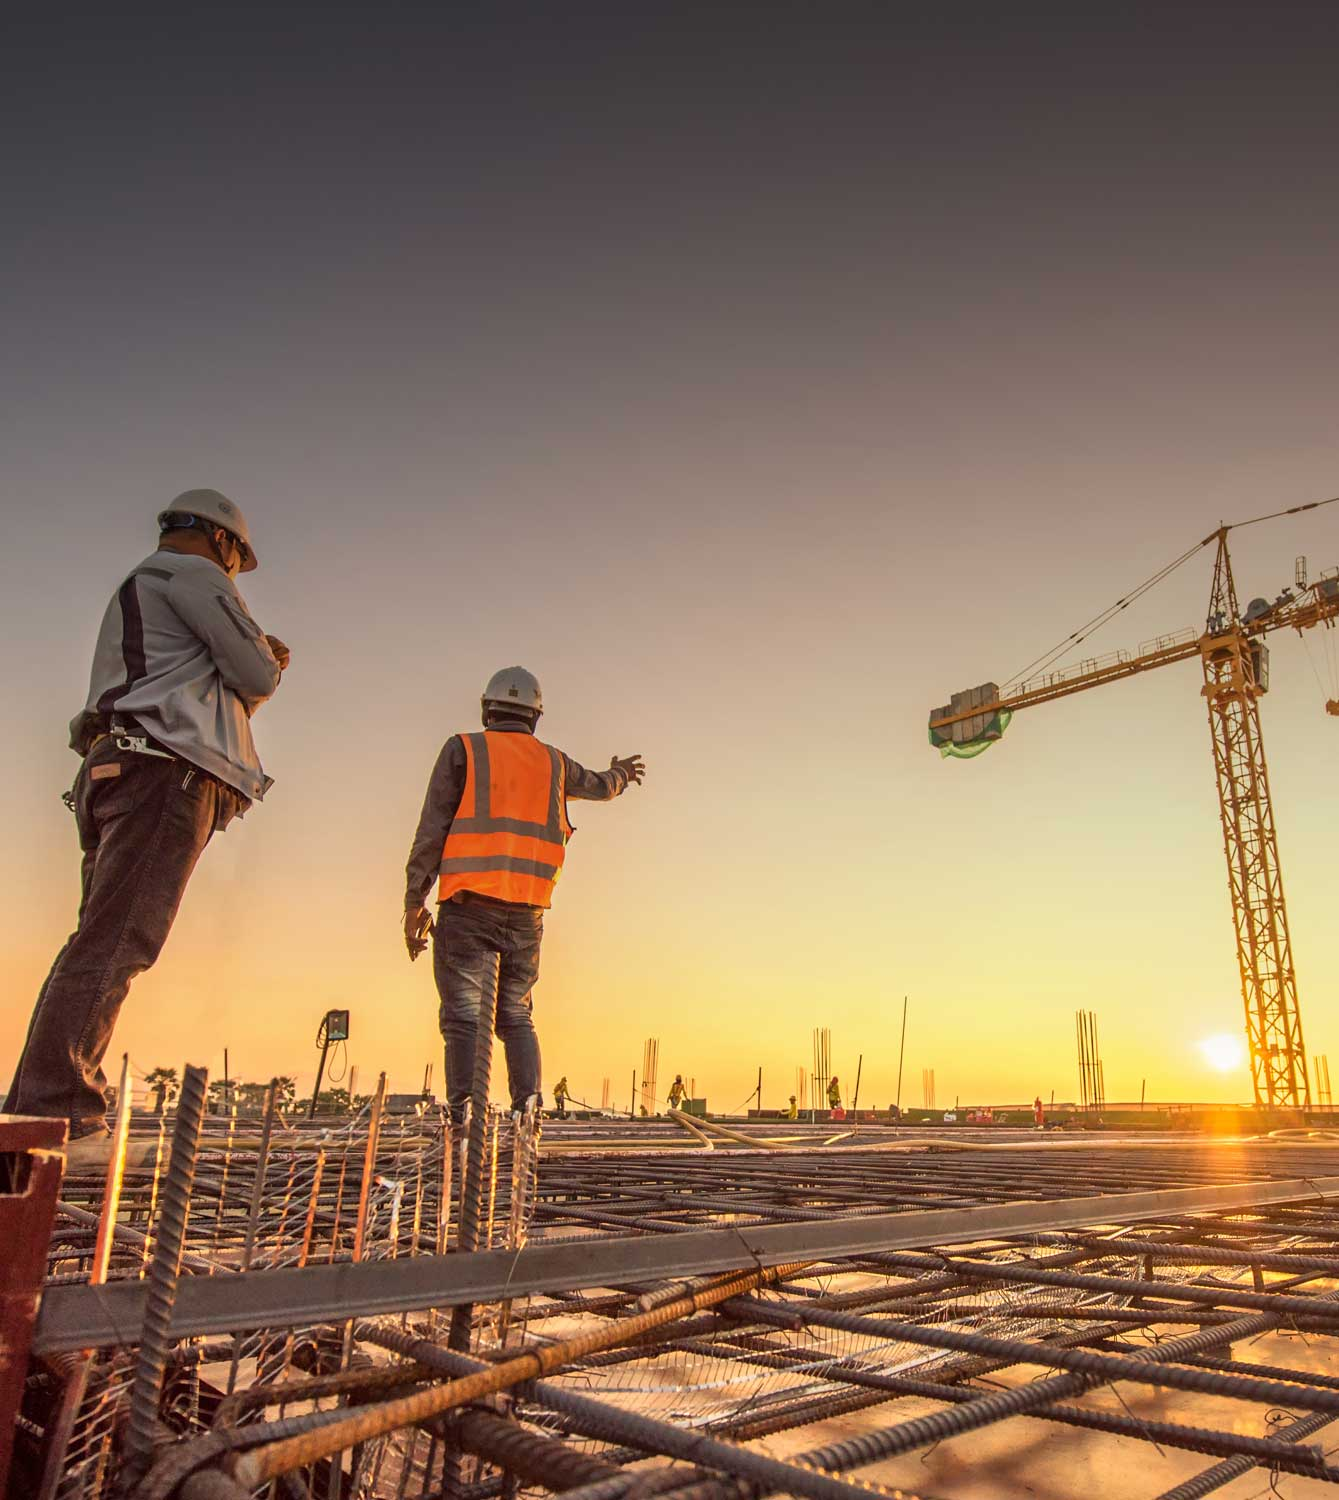 Feasibility & Growth Strategy For A Company Of Building Materials In The GCC - Asia Market Growth